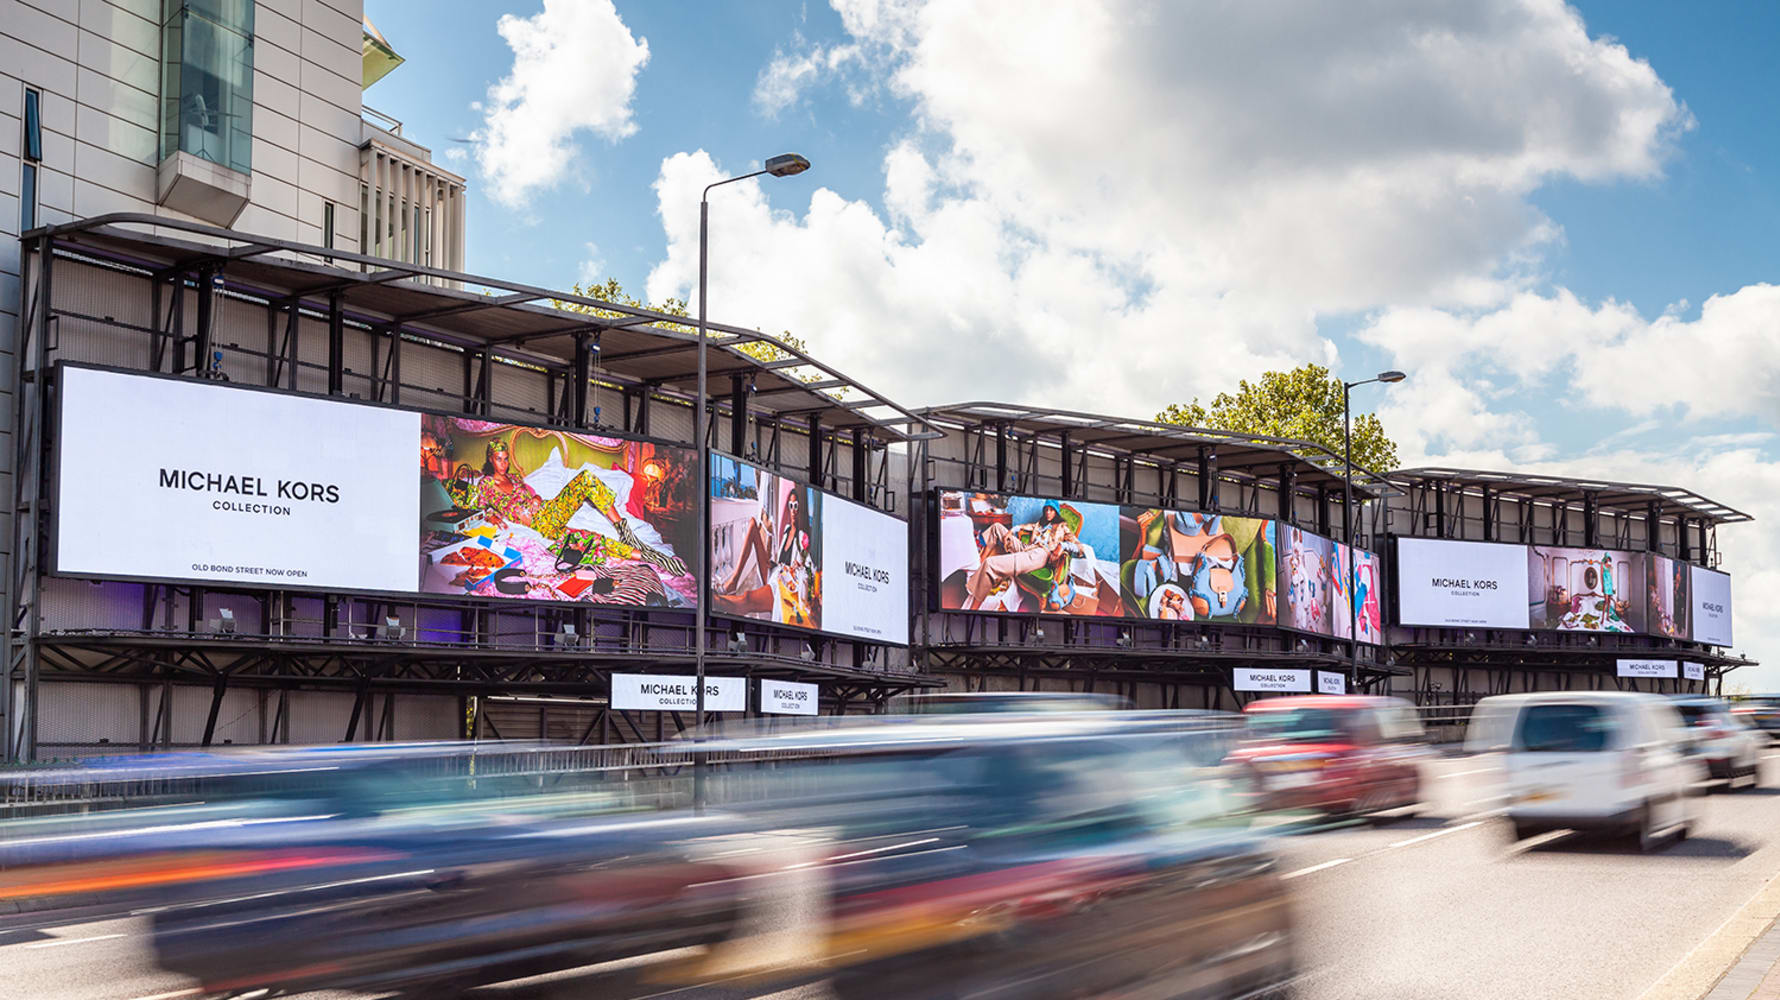 Cromwell Road domination of 6 digital billboards in a row